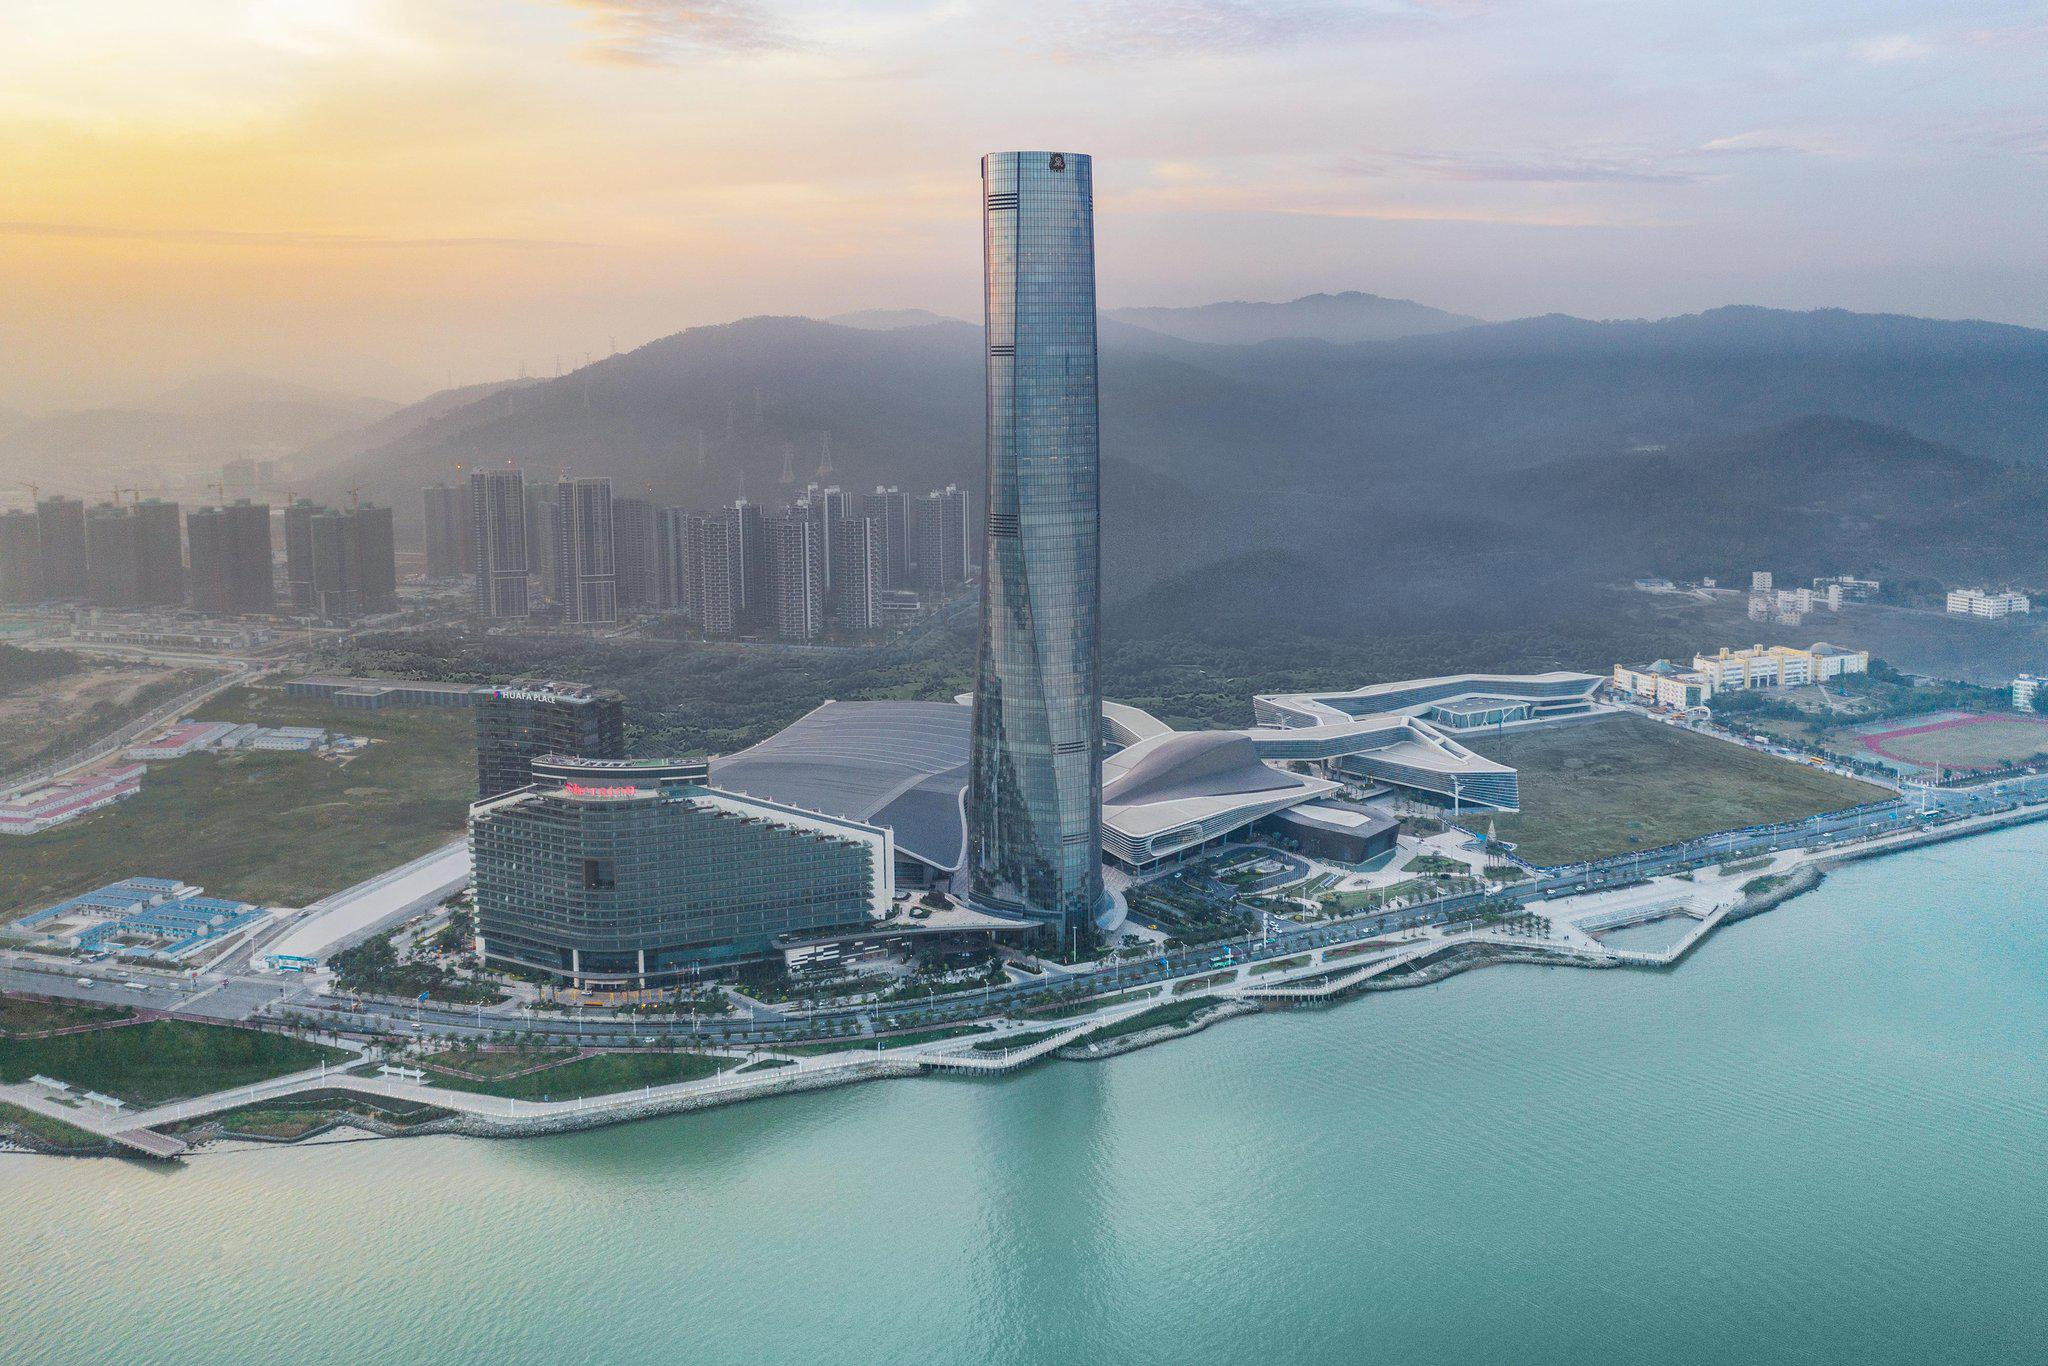 The St. Regis Zhuhai